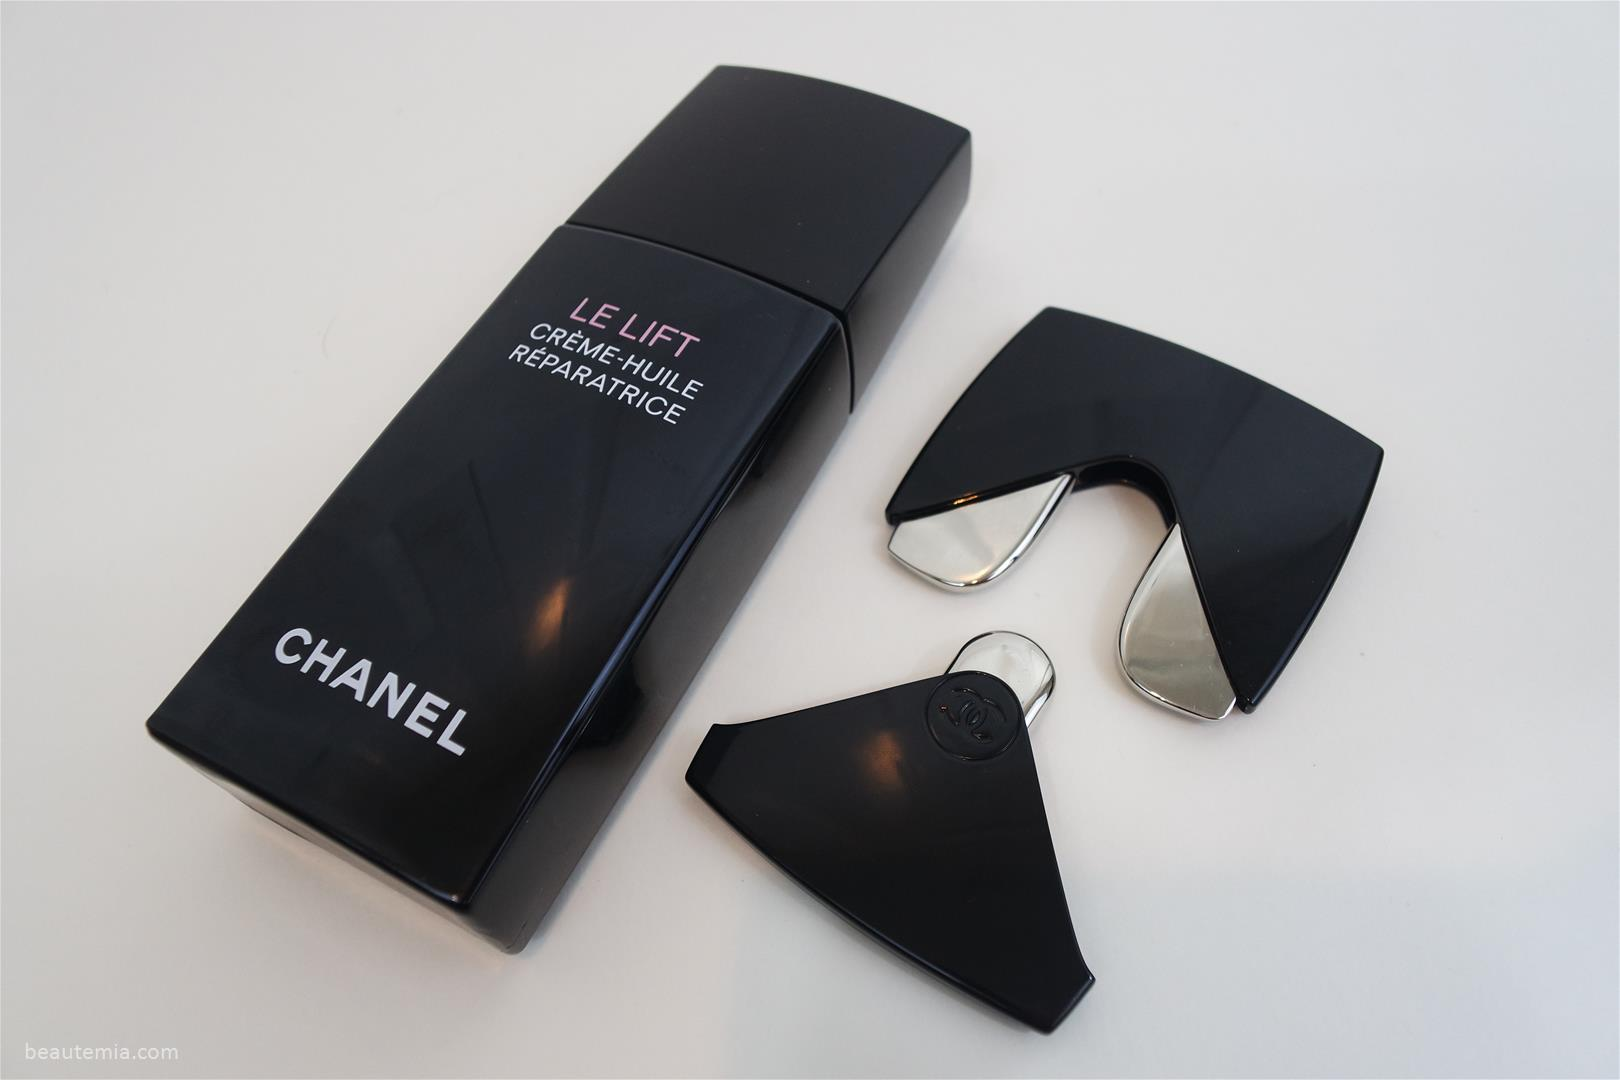 54b469176cf Chanel Review   Le Lift Firming Anti-Wrinkle Restorative Cream-Oil